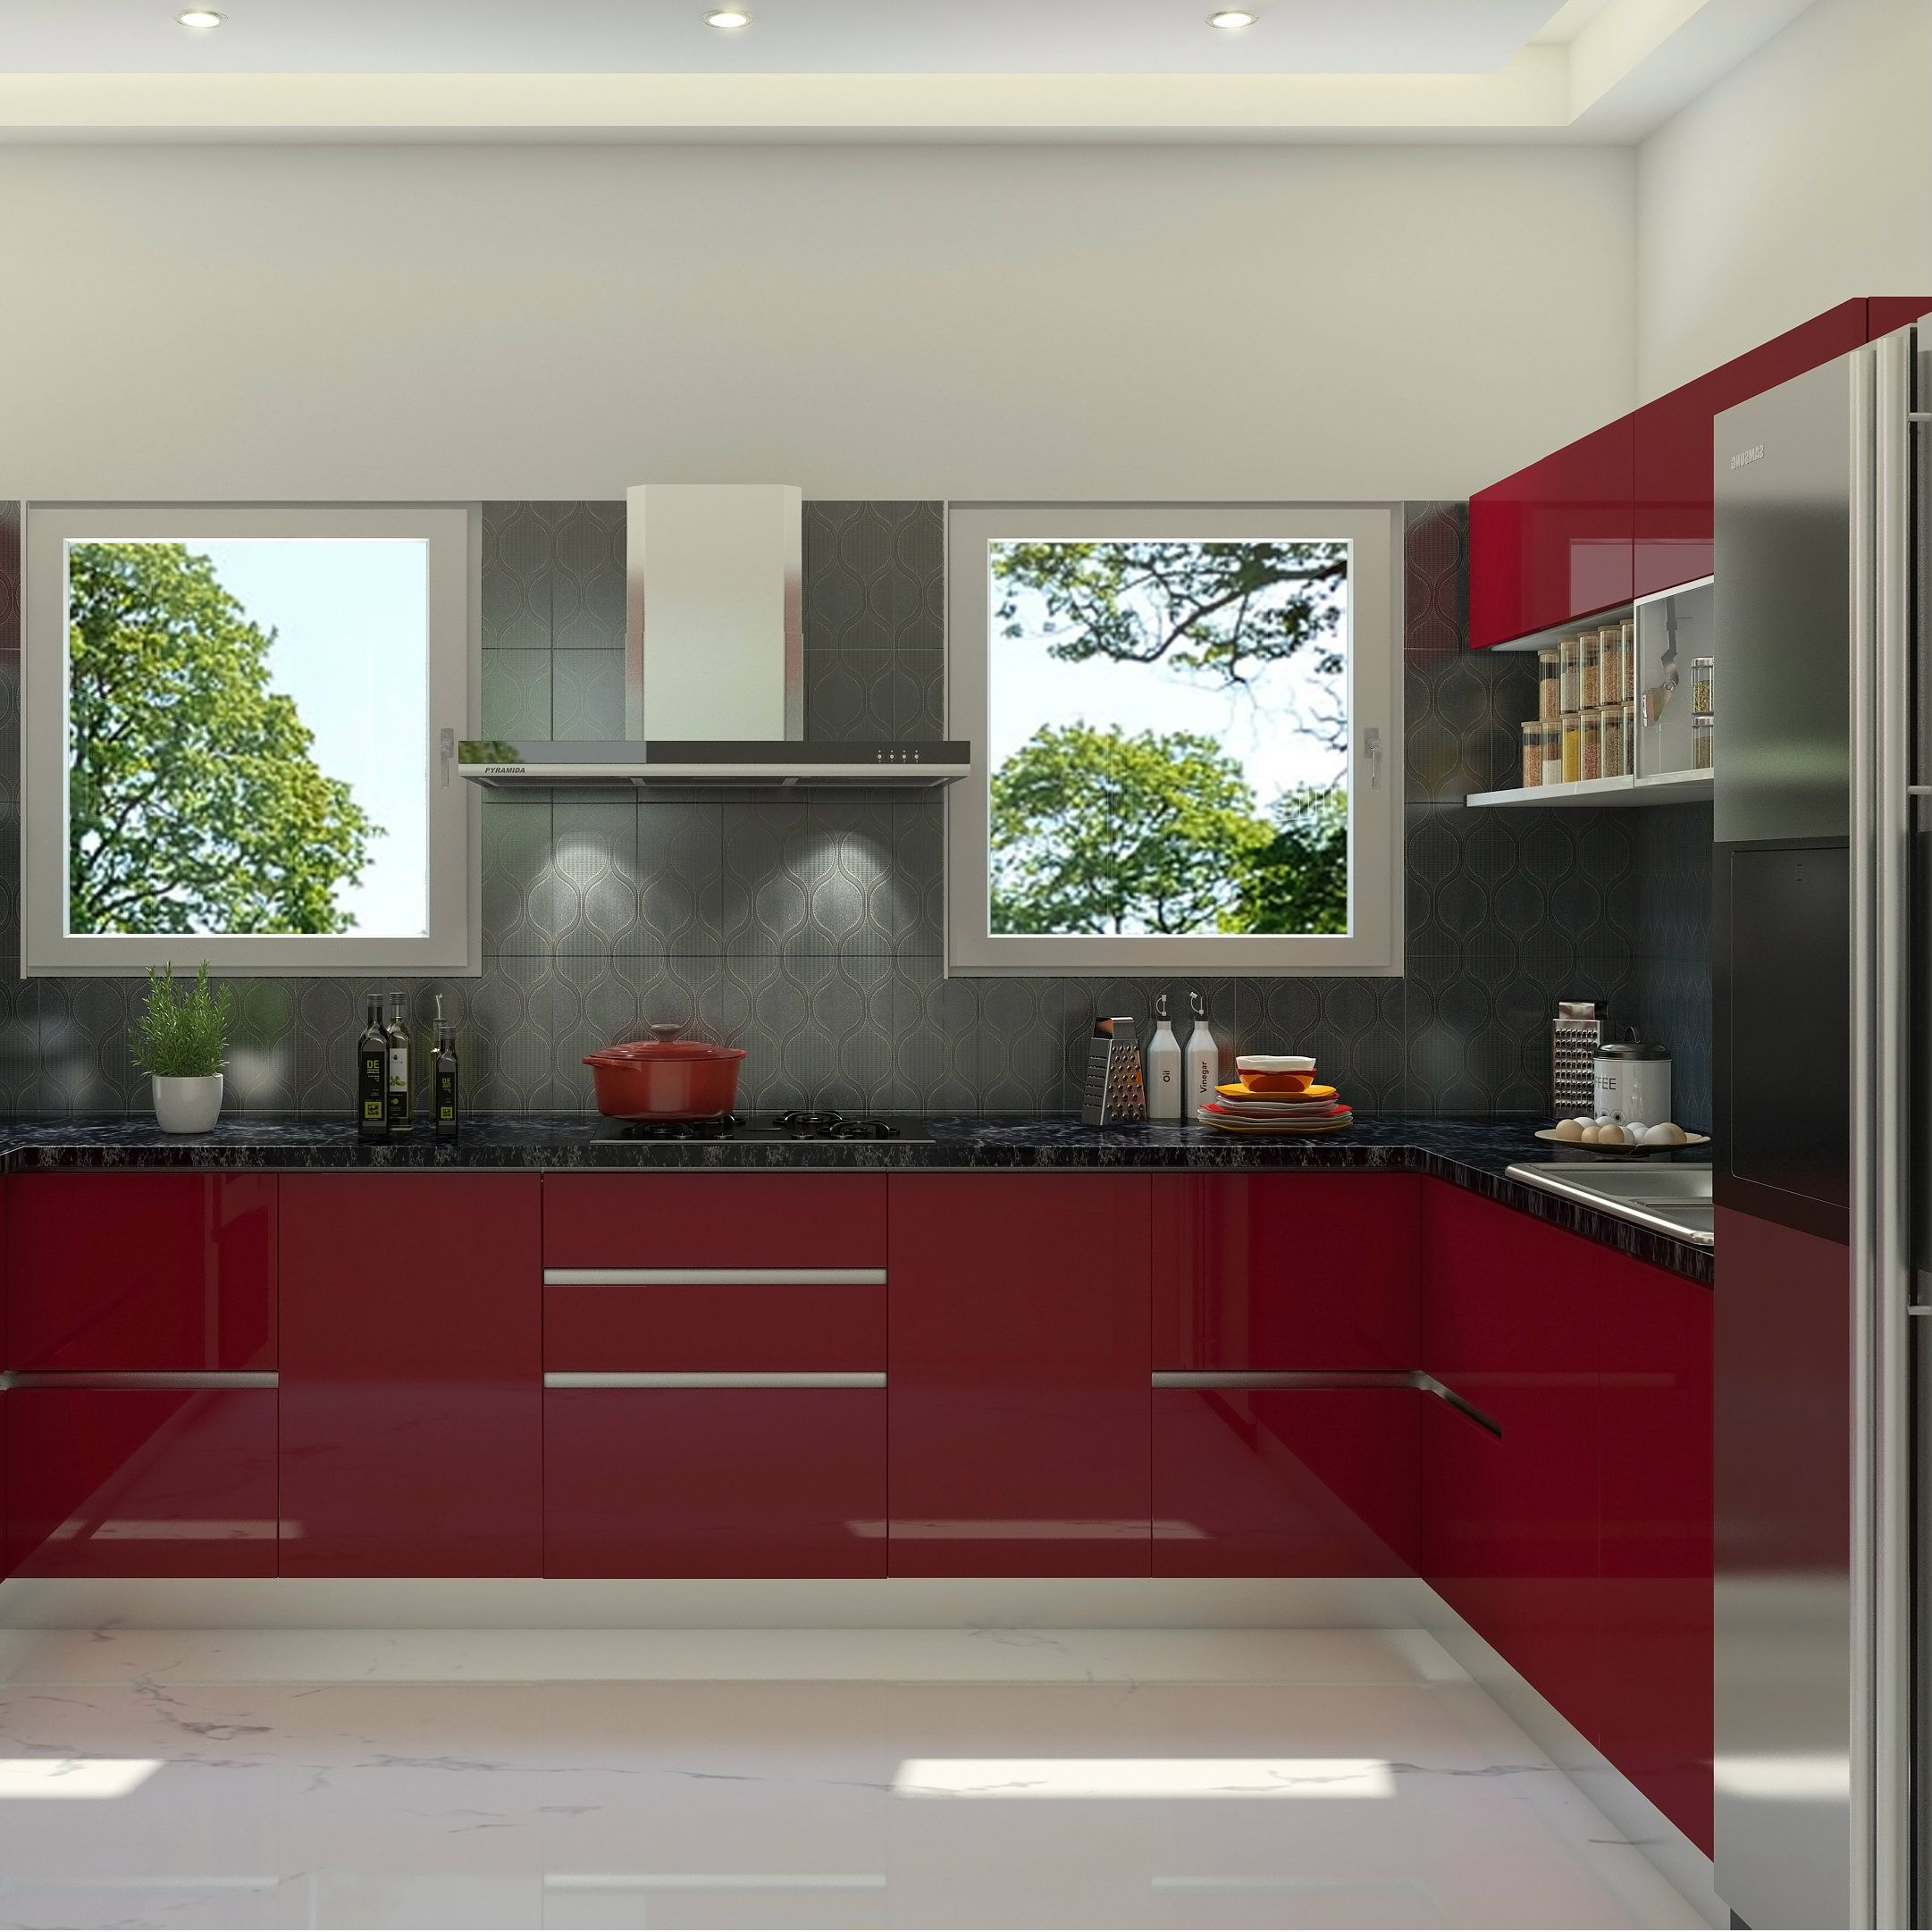 Glossy kitchen design, sleek finish, red and grey combination ...